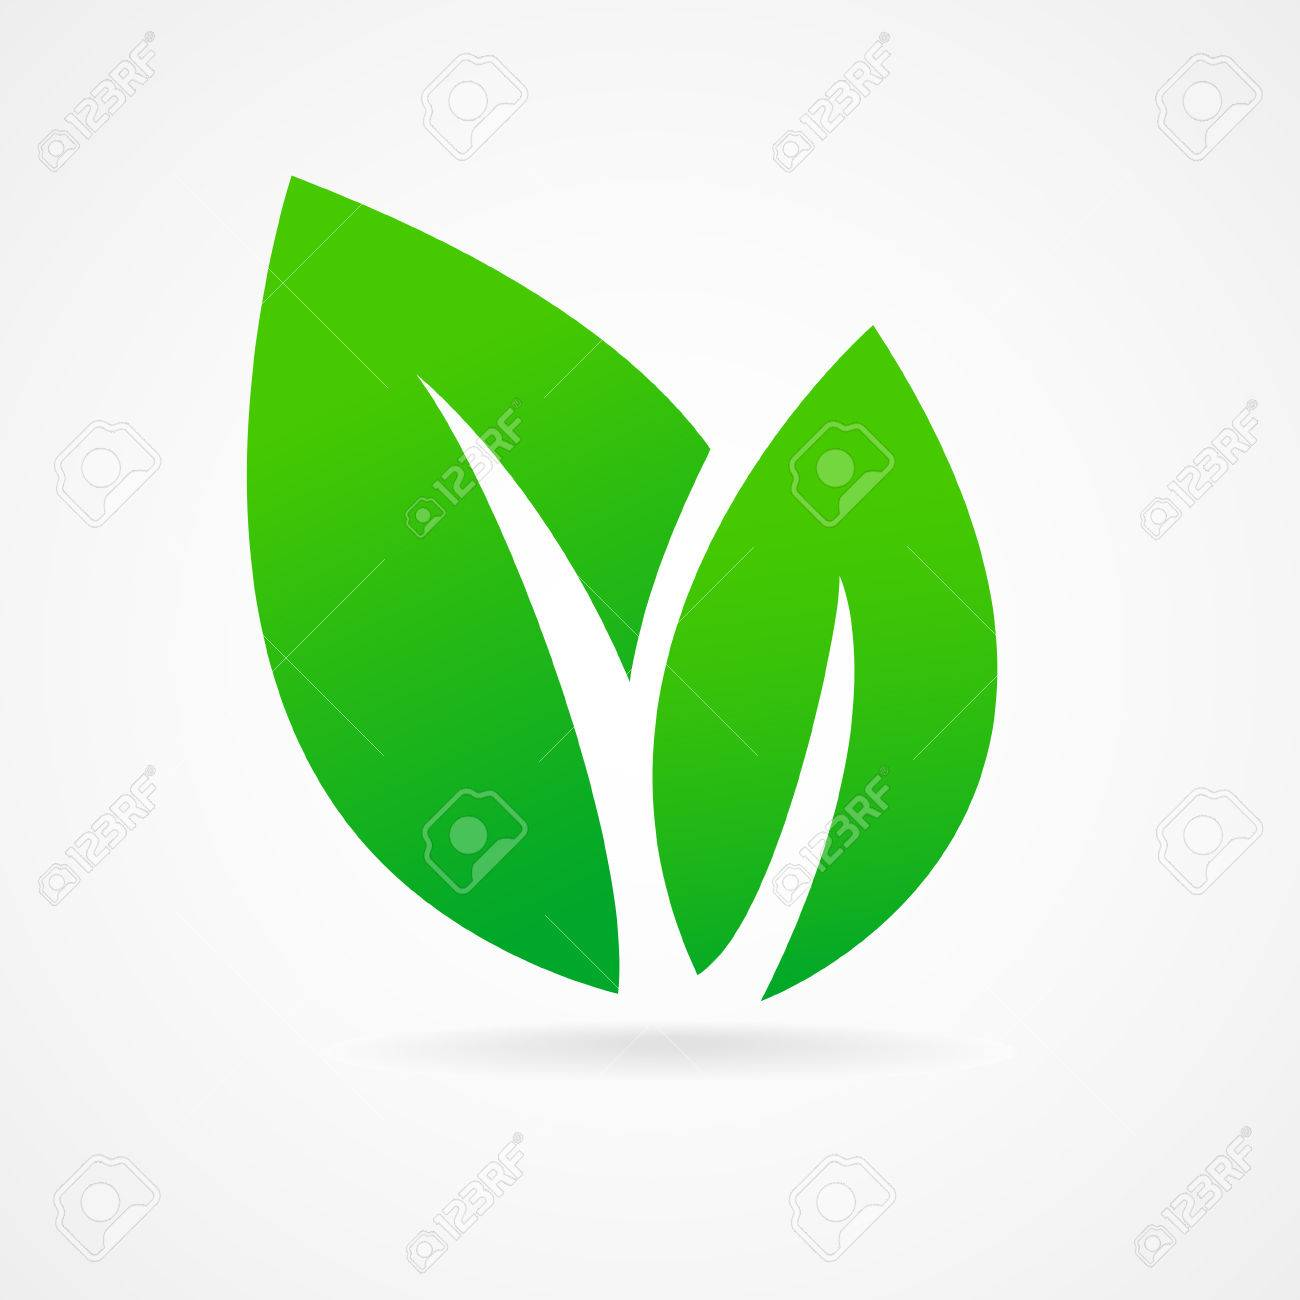 eco icon green leaf vector illustration isolated royalty free rh 123rf com leaf vector background leaf vector free download